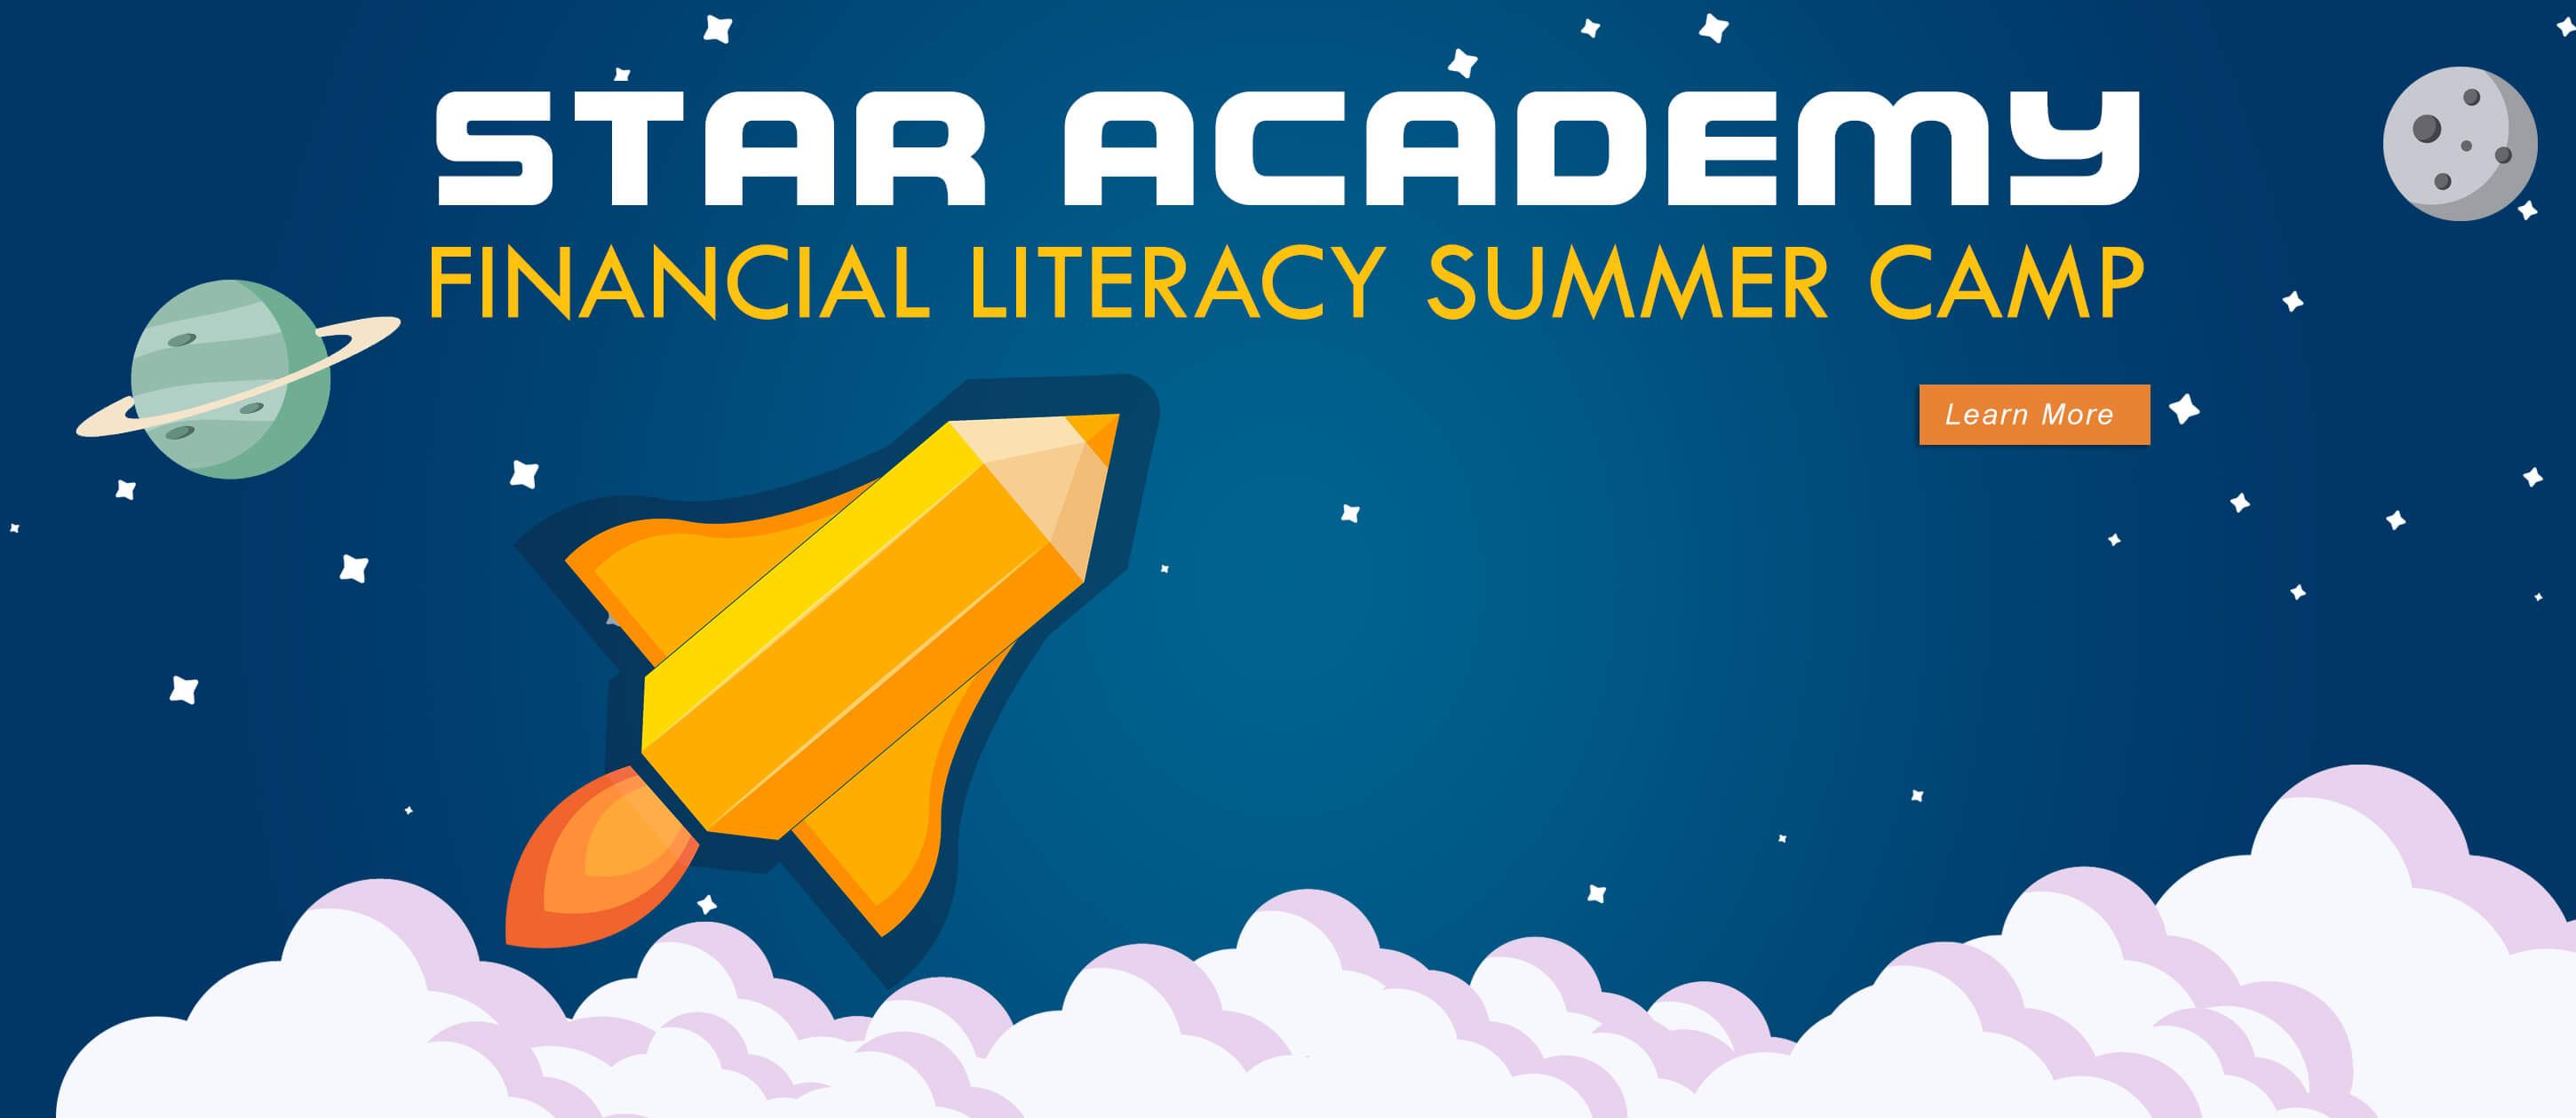 Star Academy Financial Literacy Summer Camp for Youth